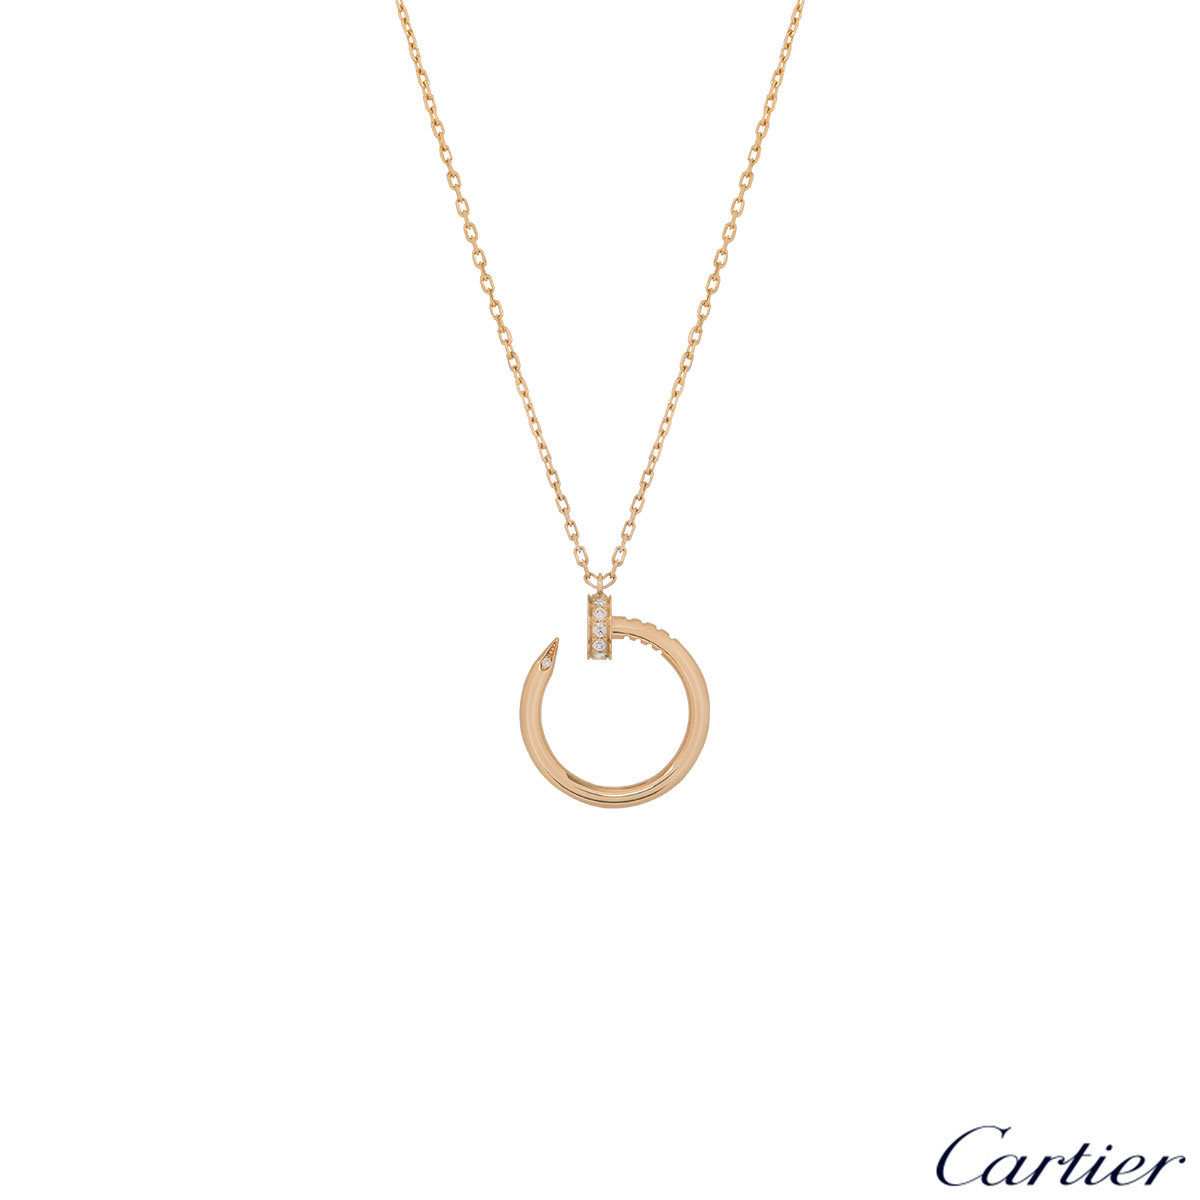 Cartier Yellow Gold Juste Un Clou Diamond Necklace B7224512